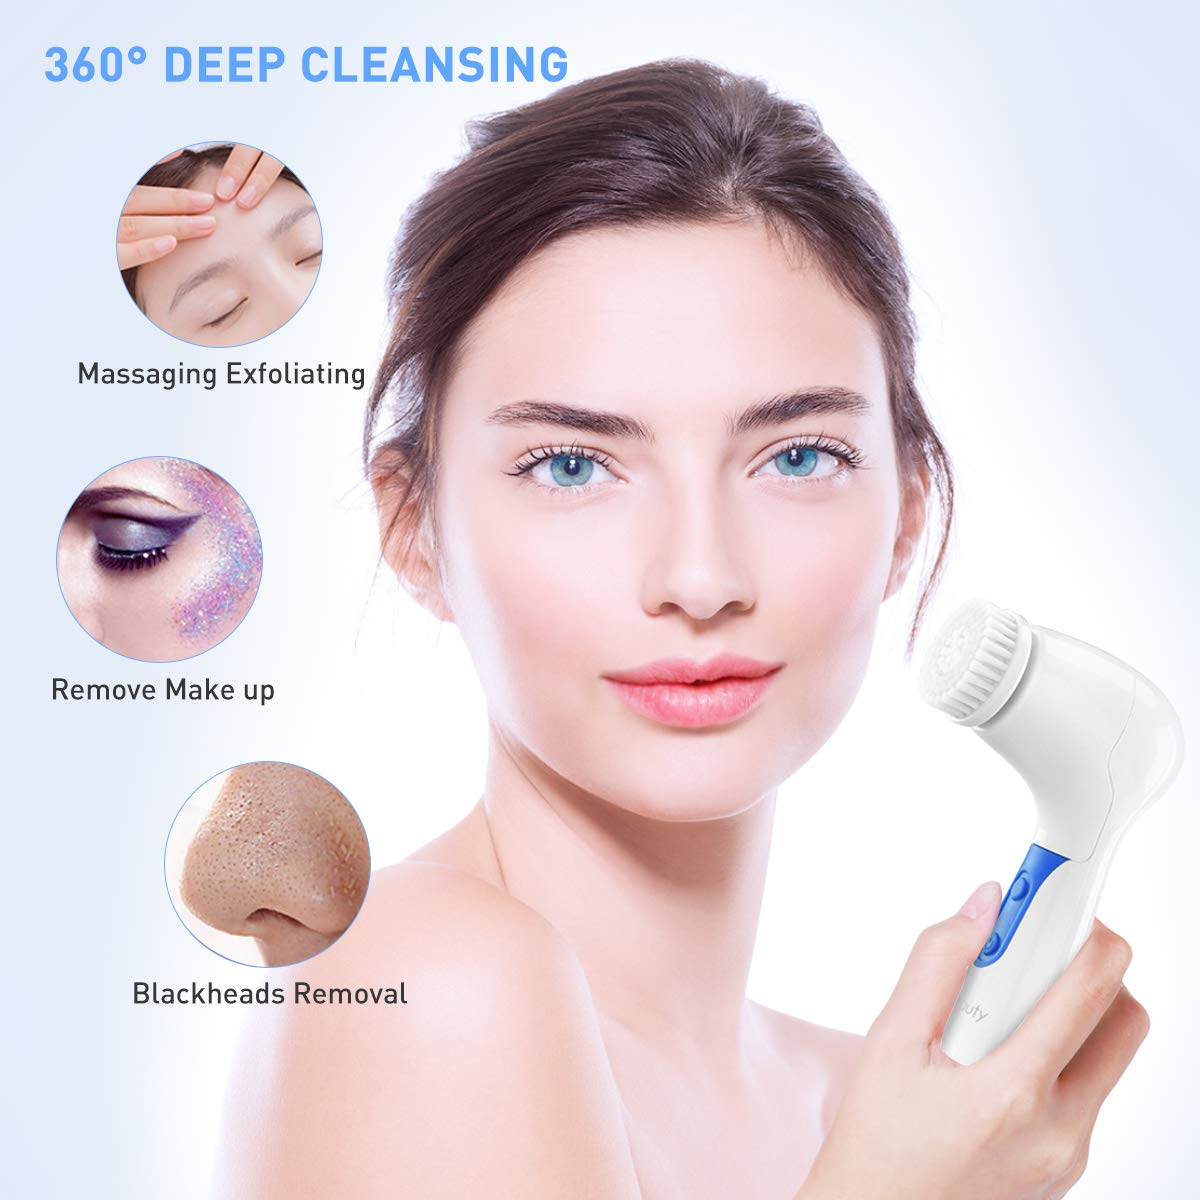 Facial Cleansing Brush 2020 UpgradedETEREAUTY Waterproof Facial Brush Spin Face Brush 4in1 Set for